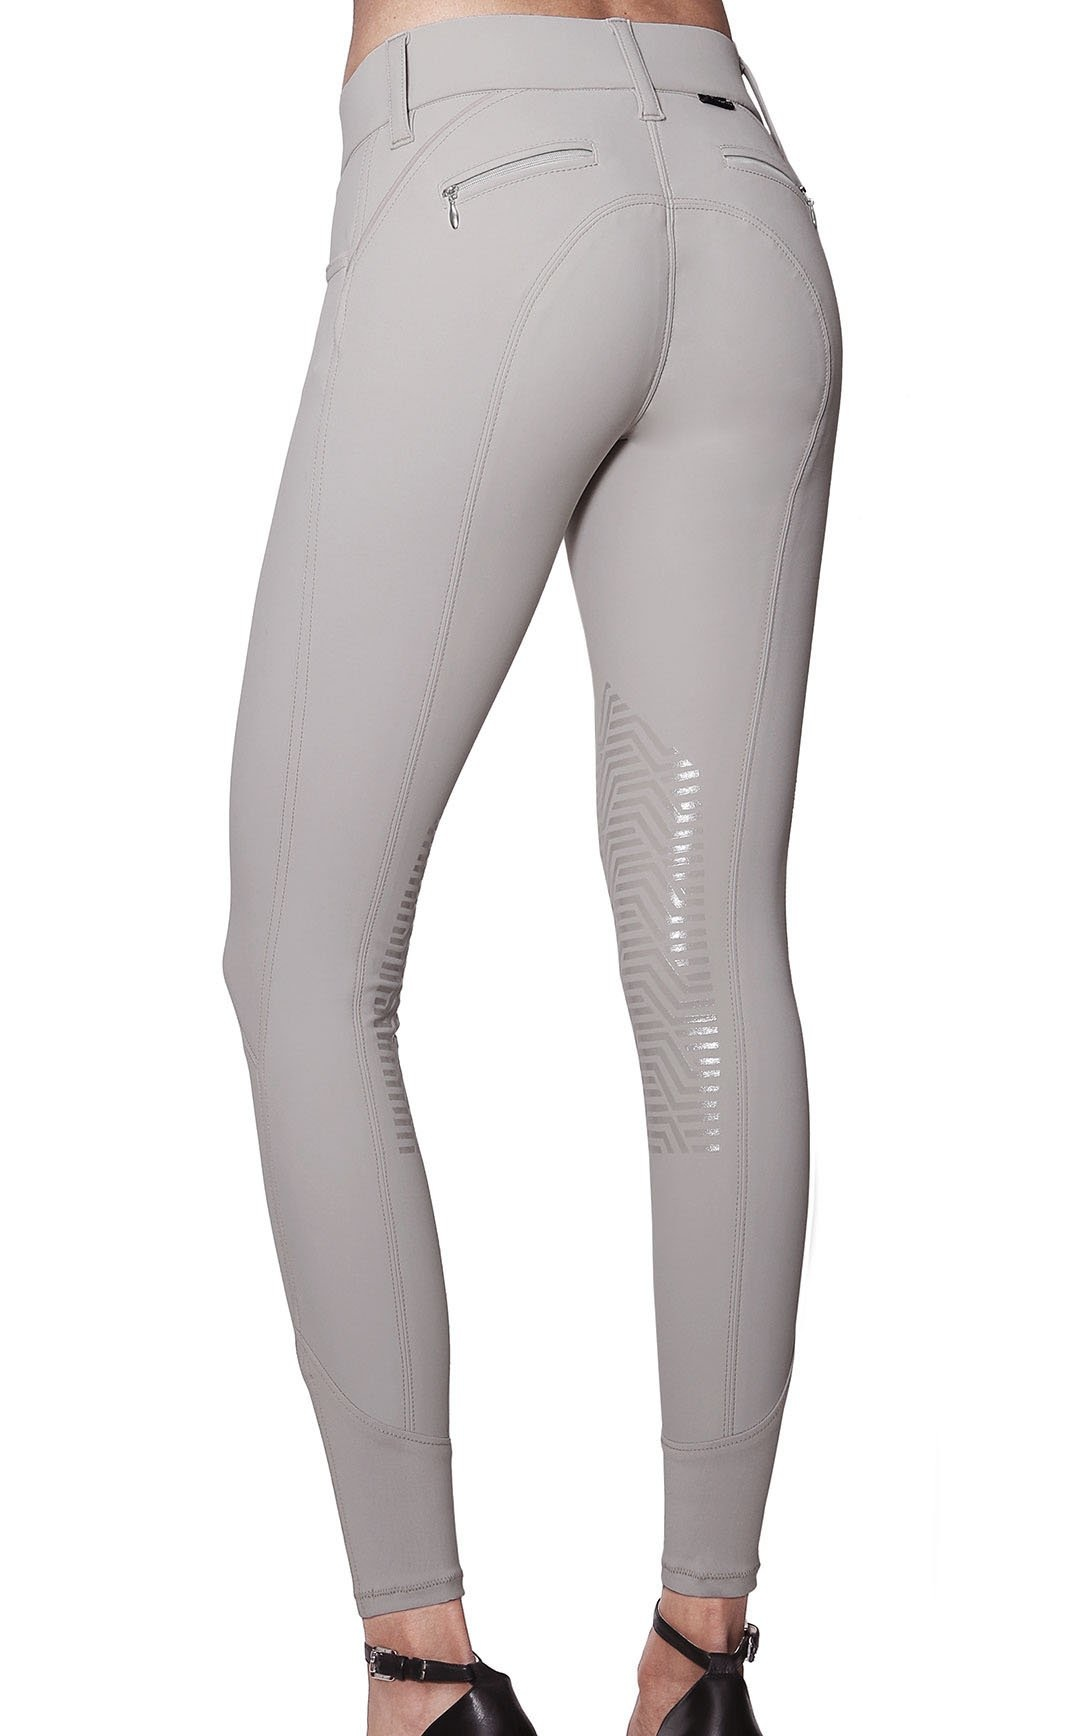 GhoDho Aubrie Pro Meryl knee patch